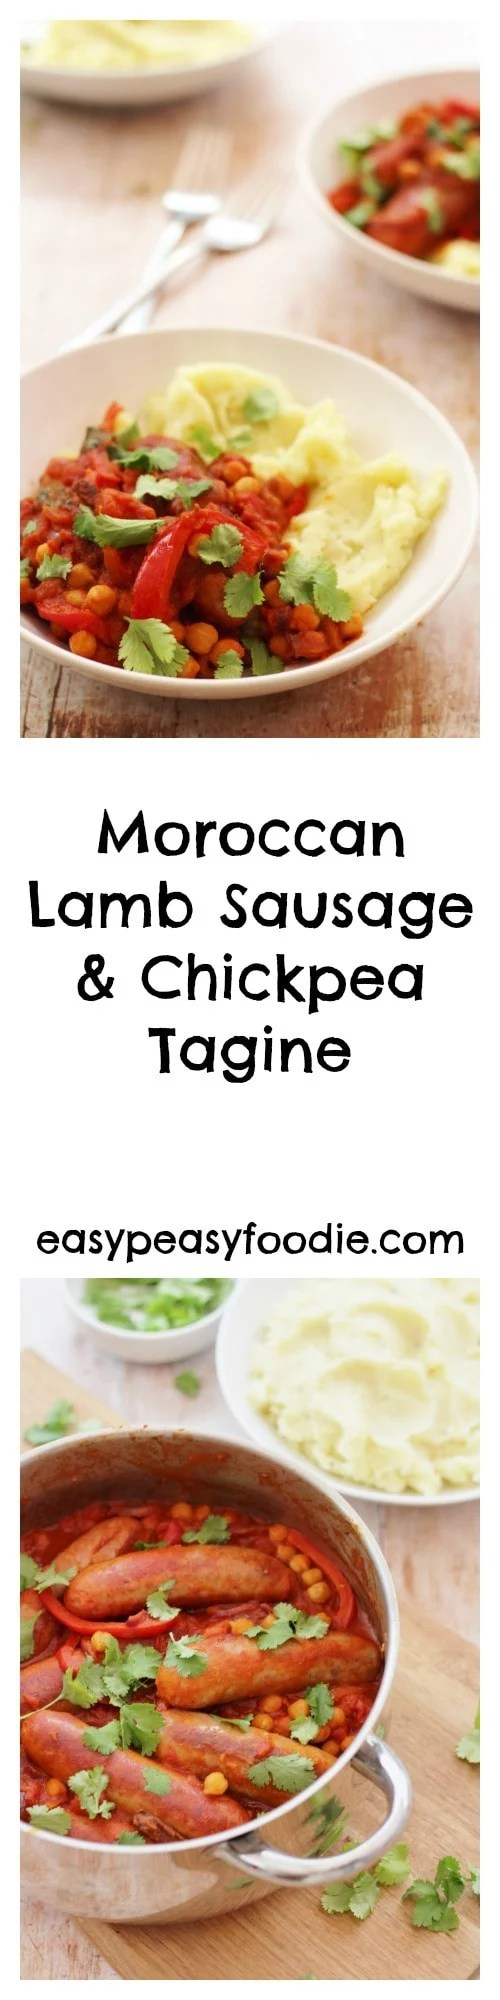 A quick and easy stew full of North African flavours, this delicious Moroccan Lamb Sausage and Chickpea Tagine is made with lamb sausages, cutting down the cooking time dramatically and making this a great way to enjoy a tagine on a busy weeknight. #moroccan #lamb #lambsausage #sausages #tagine #chickpeas #easydinners #quickdinners #familydinners #easypeasyfoodie